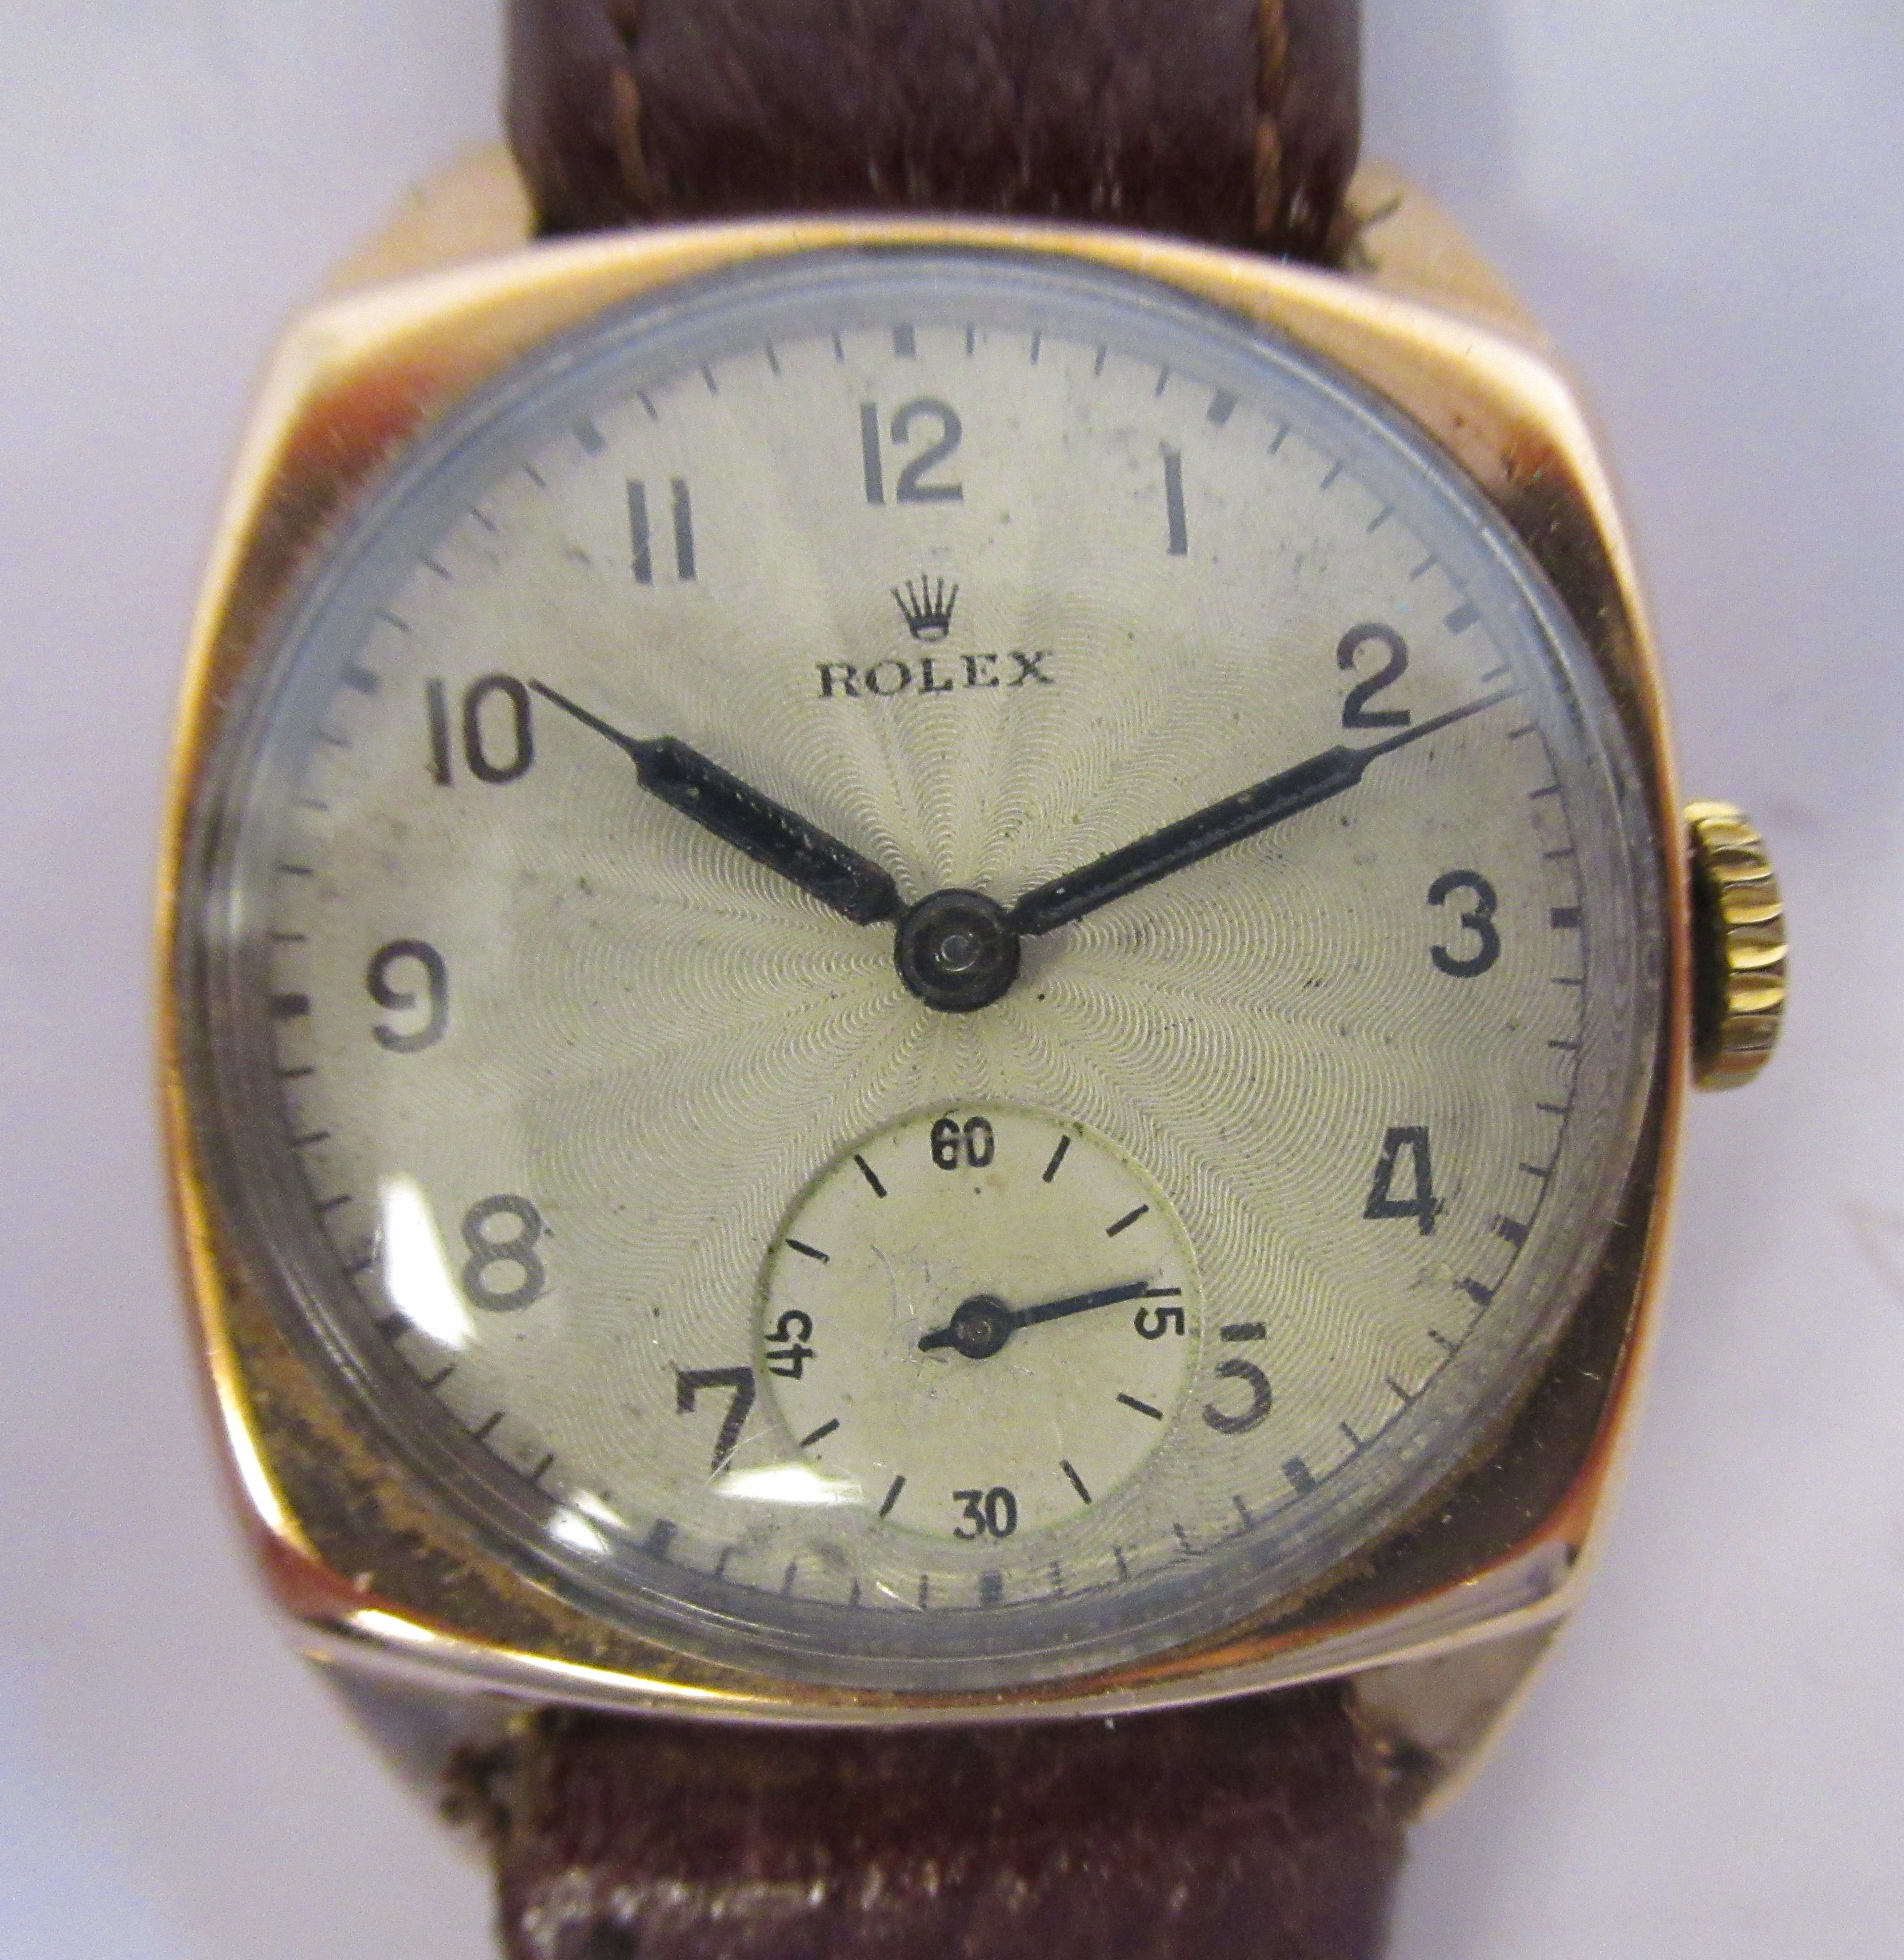 A 1942 Rolex 9ct gold cased wristwatch, faced by an engine turned Arabic dial,incorporating